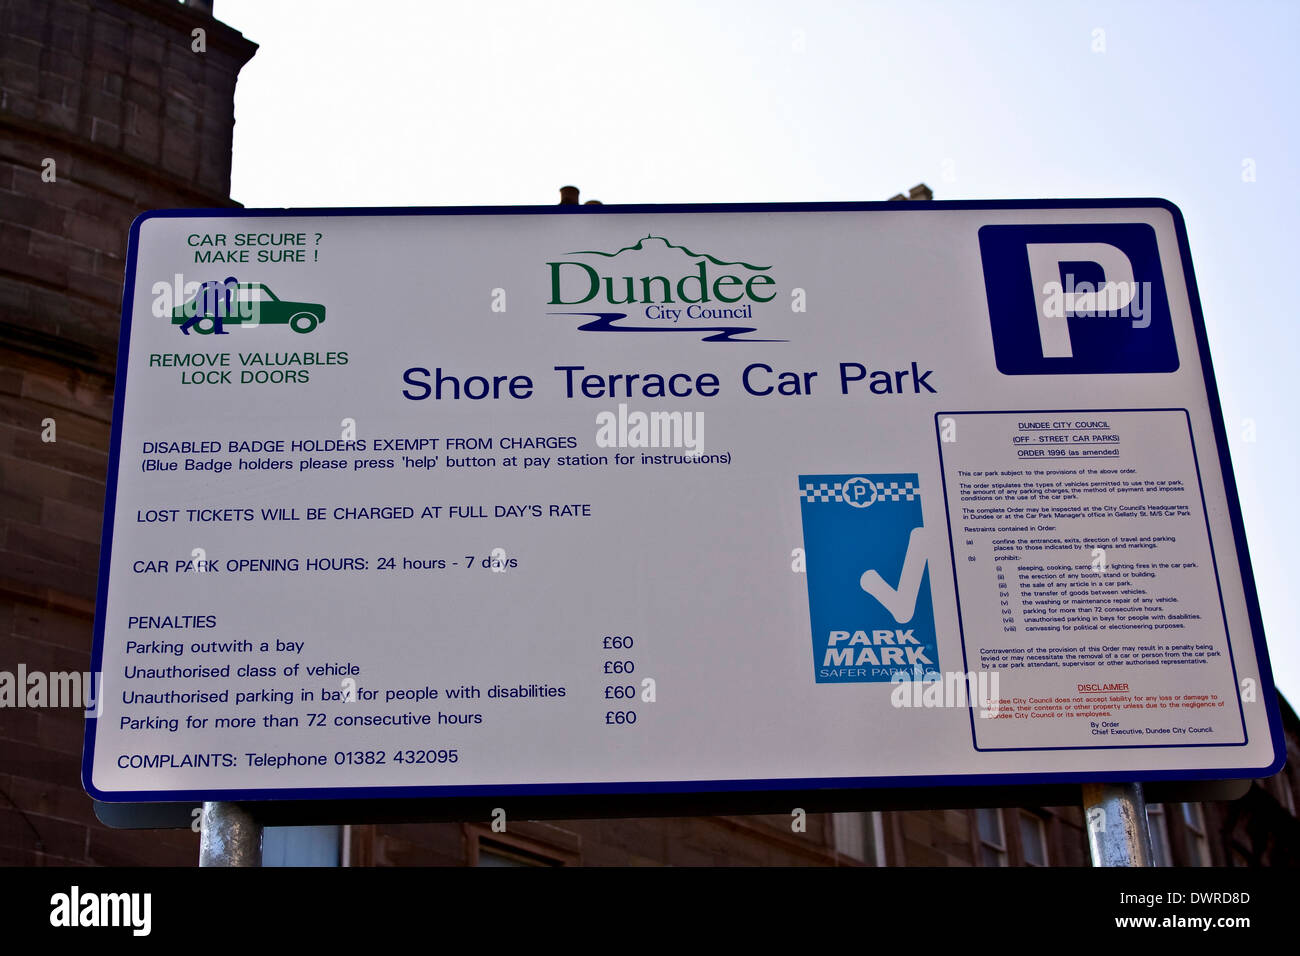 Large 'Dundee City Council' car park sign displaying useful information along Shore Terrace in Dundee, UK - Stock Image